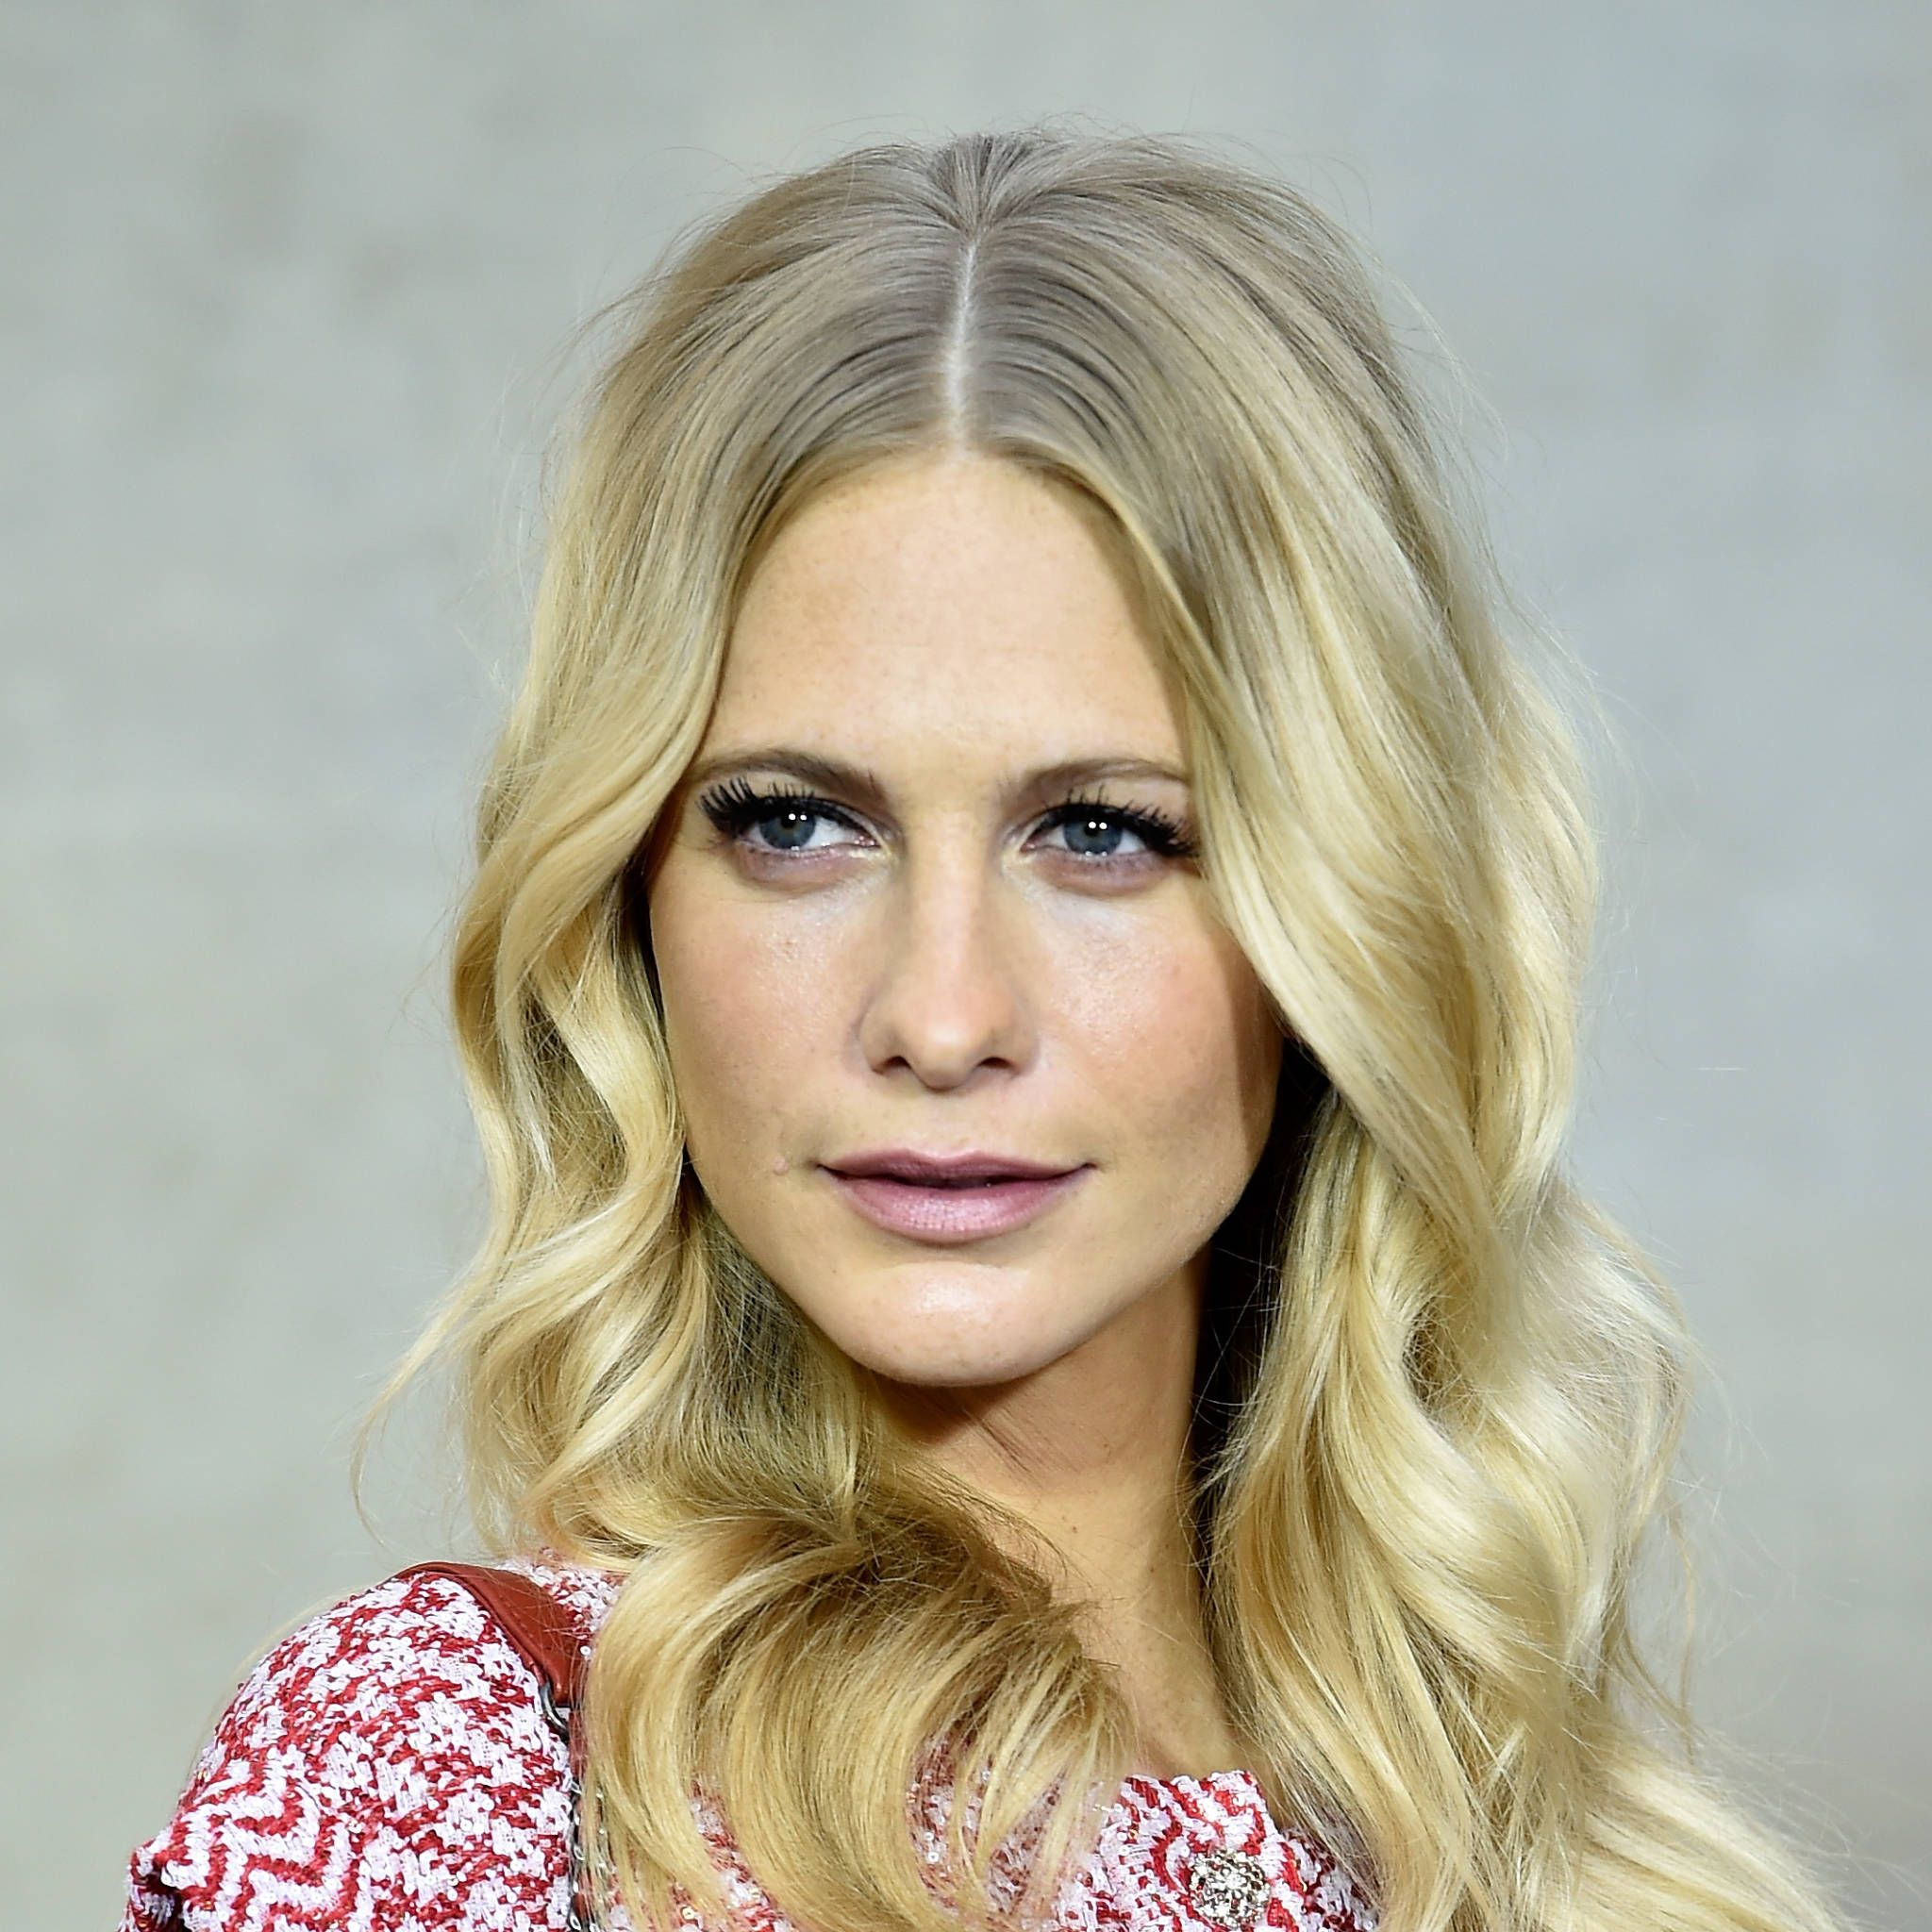 Poppy Delevingne hairstyle at Chanel show - Spring/Summer 2015 beauty trends - Paris Fashion Week